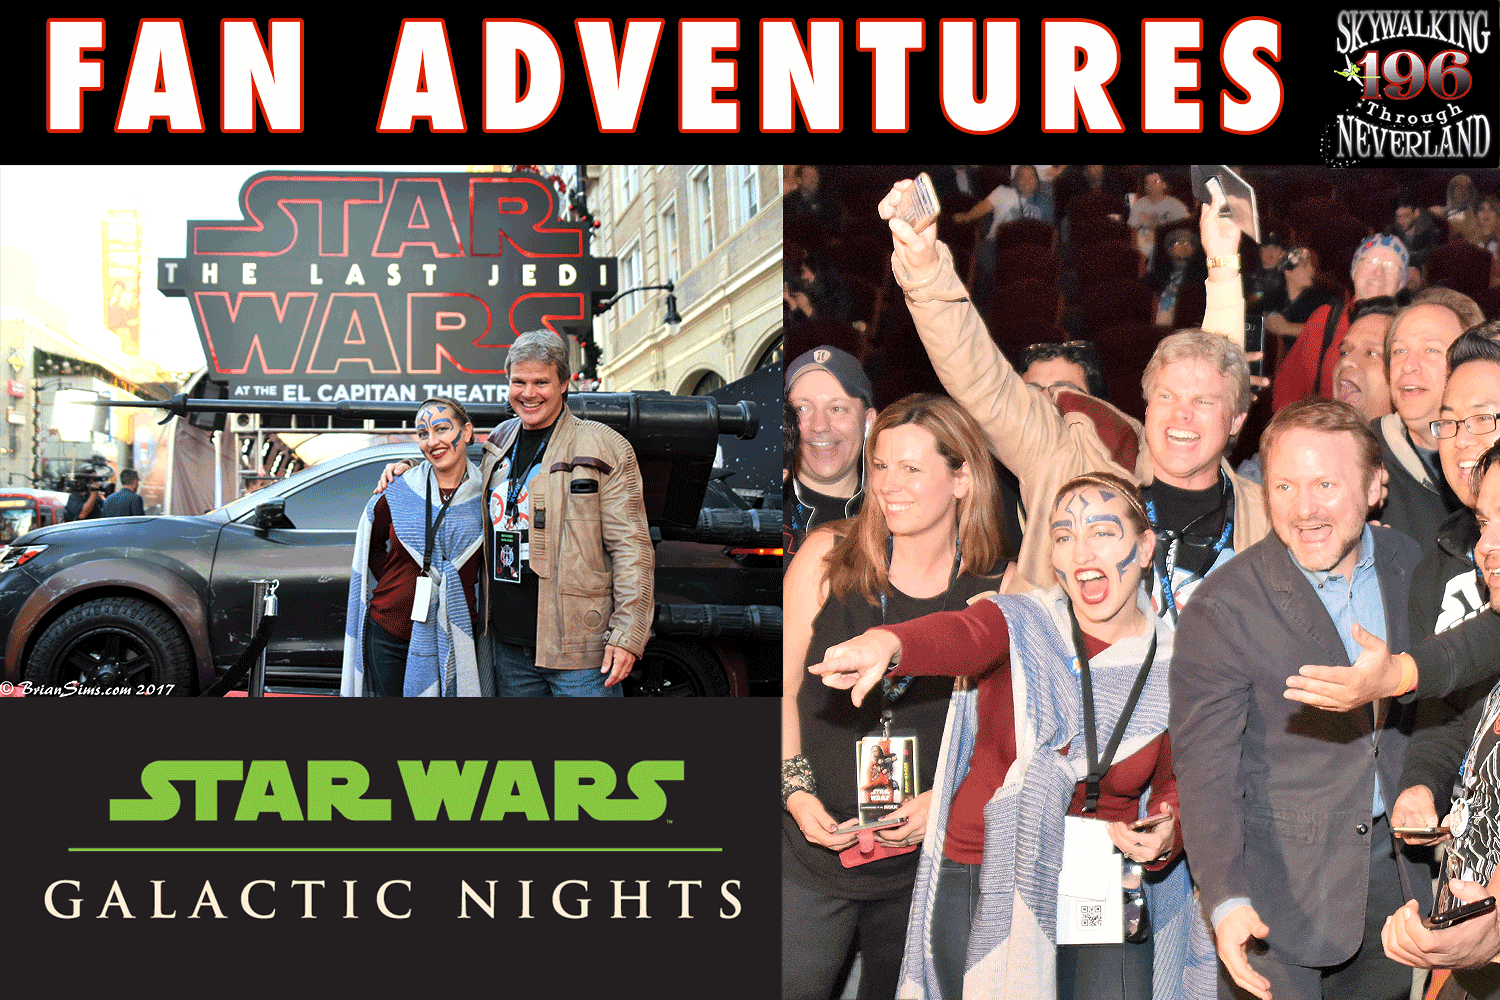 Skywalking Through Neverland #196: The Last Jedi Fan Adventures